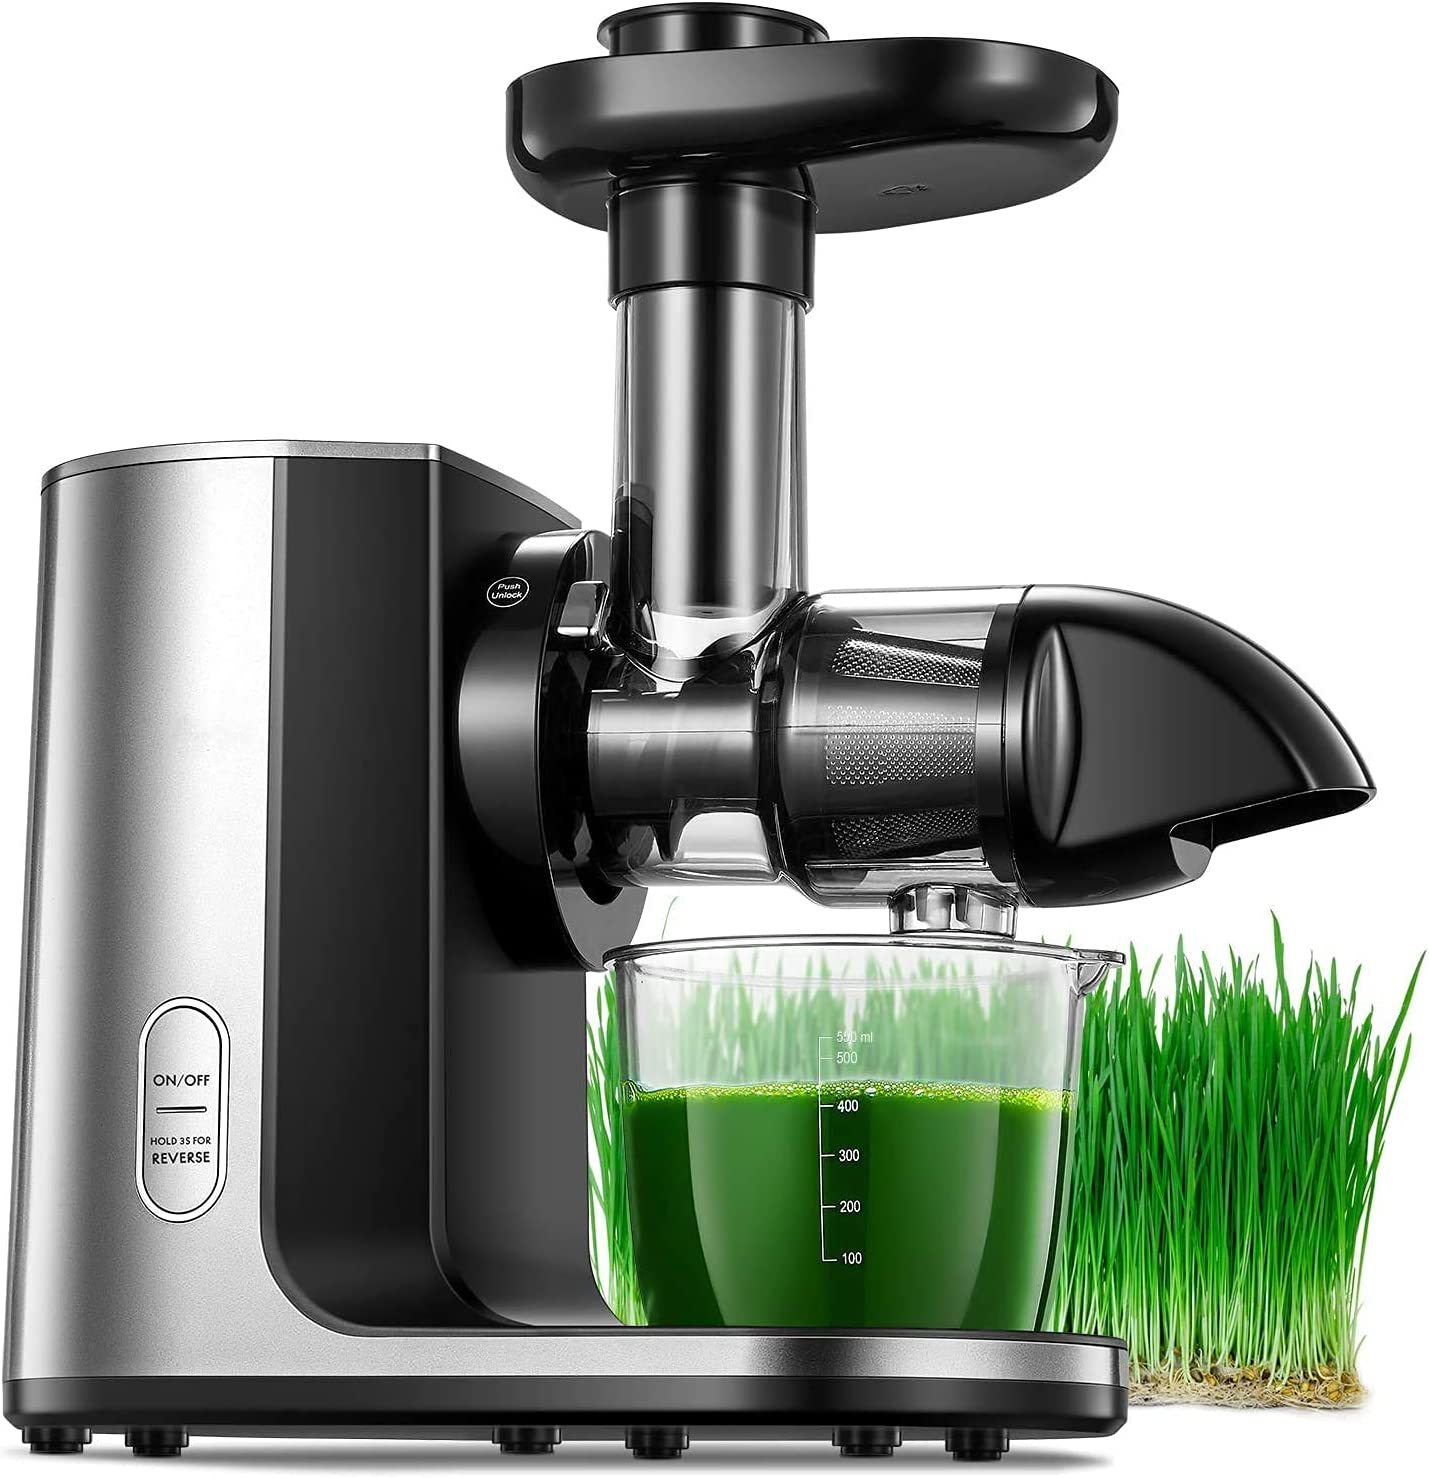 Juicer Machines, Cold Press Masticating Juicer with Quiet Motor, Easy to Clean with Brush, Higher Juice Yield, Slow Masticating Juicer with Reverse Function & Recipes for Vegetables and Fruits Included